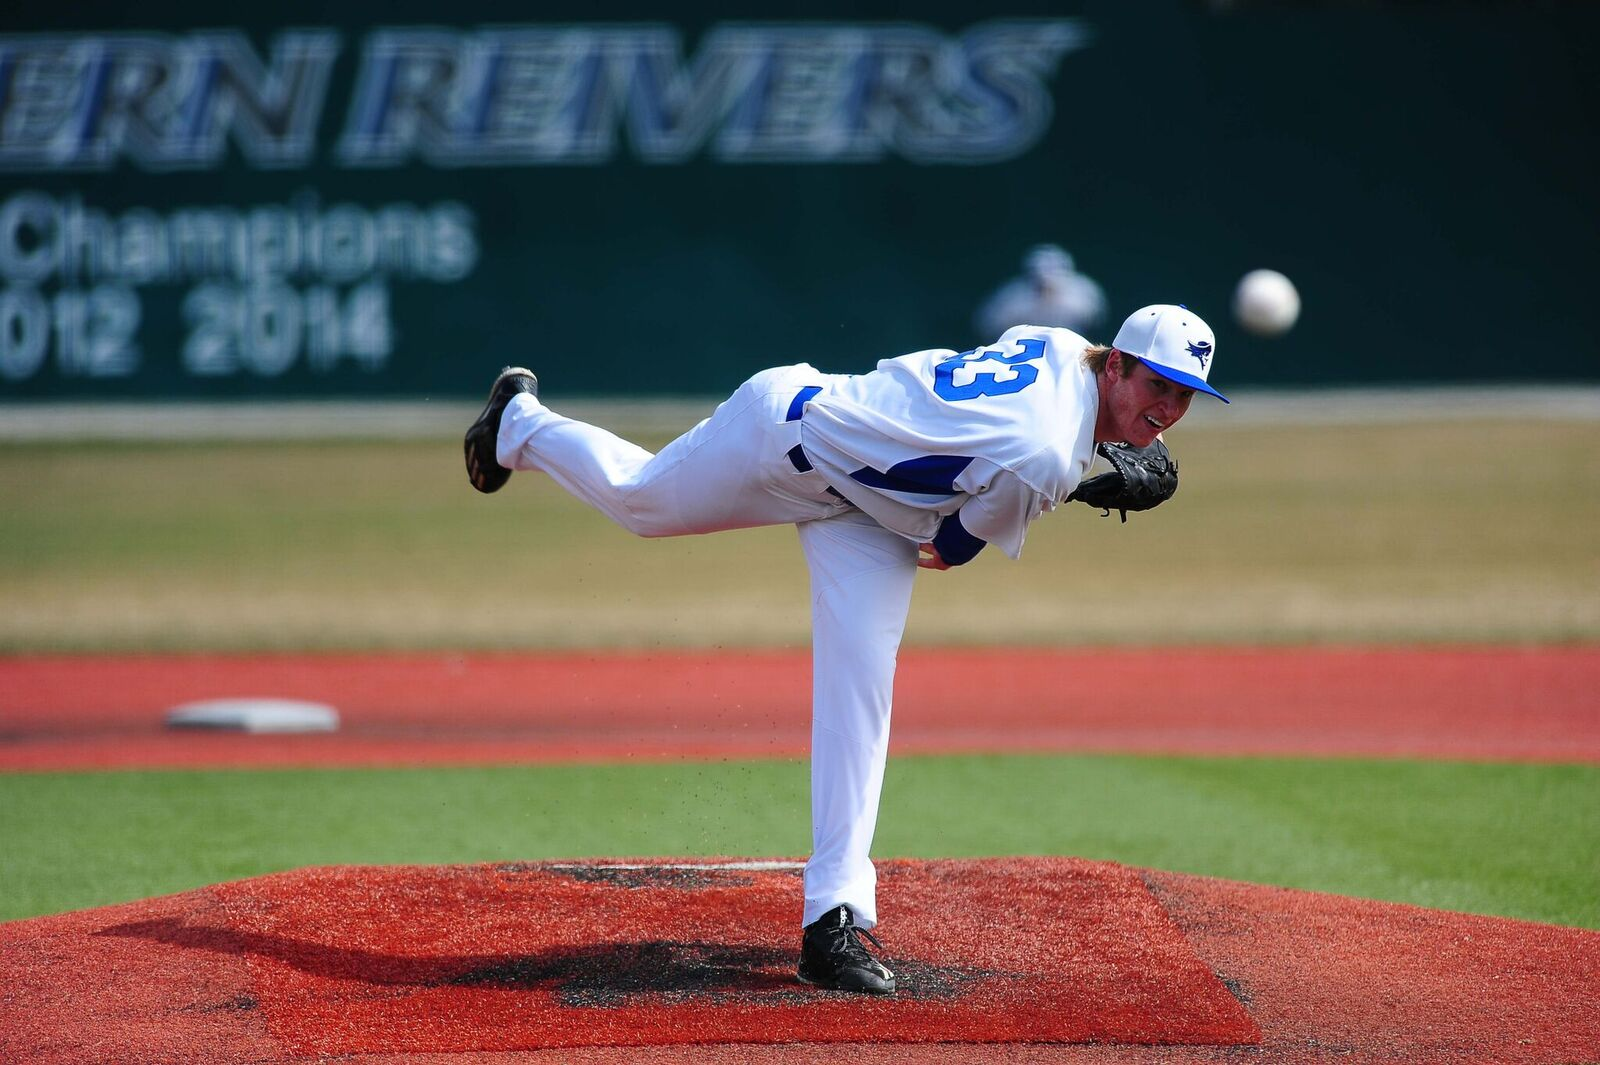 Reivers Win 5 Games in 3 Days, Move to 43-5